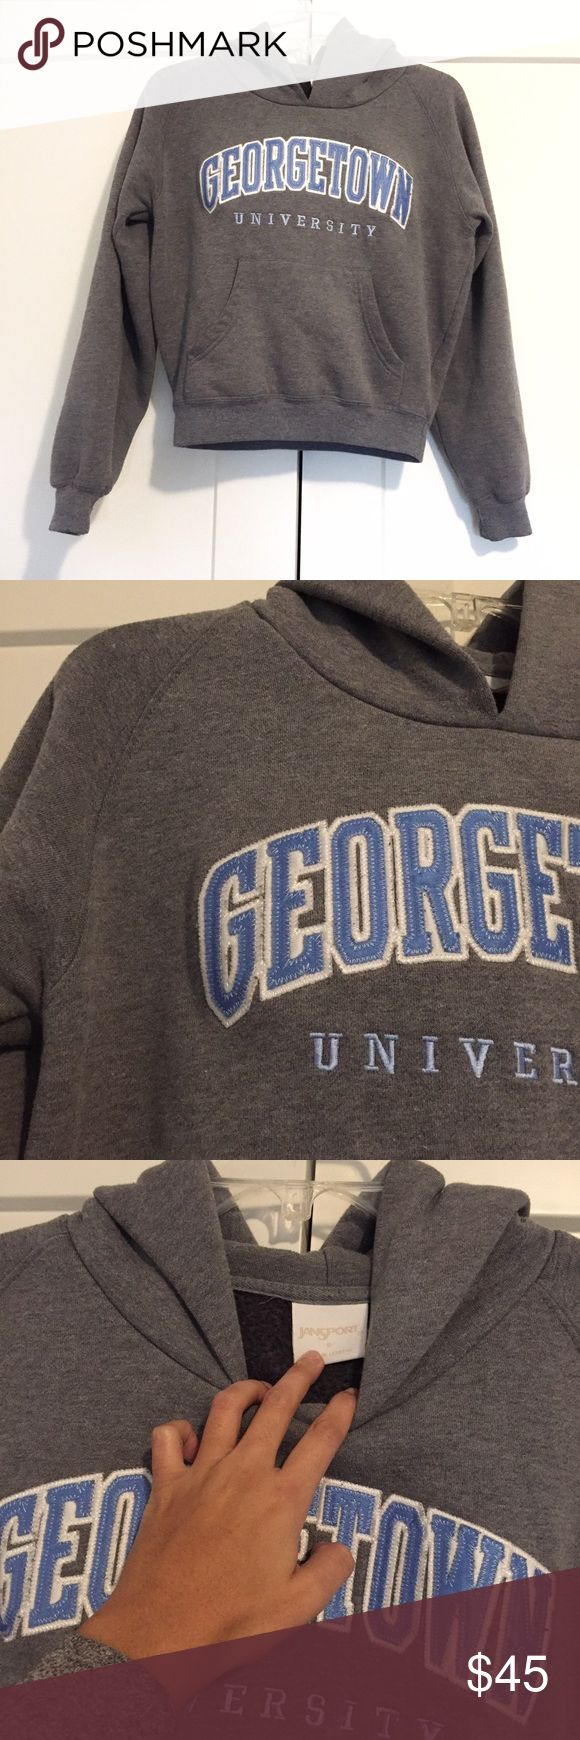 Georgetown University Hoodie Sweatshirt Super cool rare Georgetown University hoodie. Was in storage and just found this again and it's too small for me now. Size S but fits like an XS or smaller. Warm and soft! No trades ❤️ not Nike it's Jansport Nike Sweaters